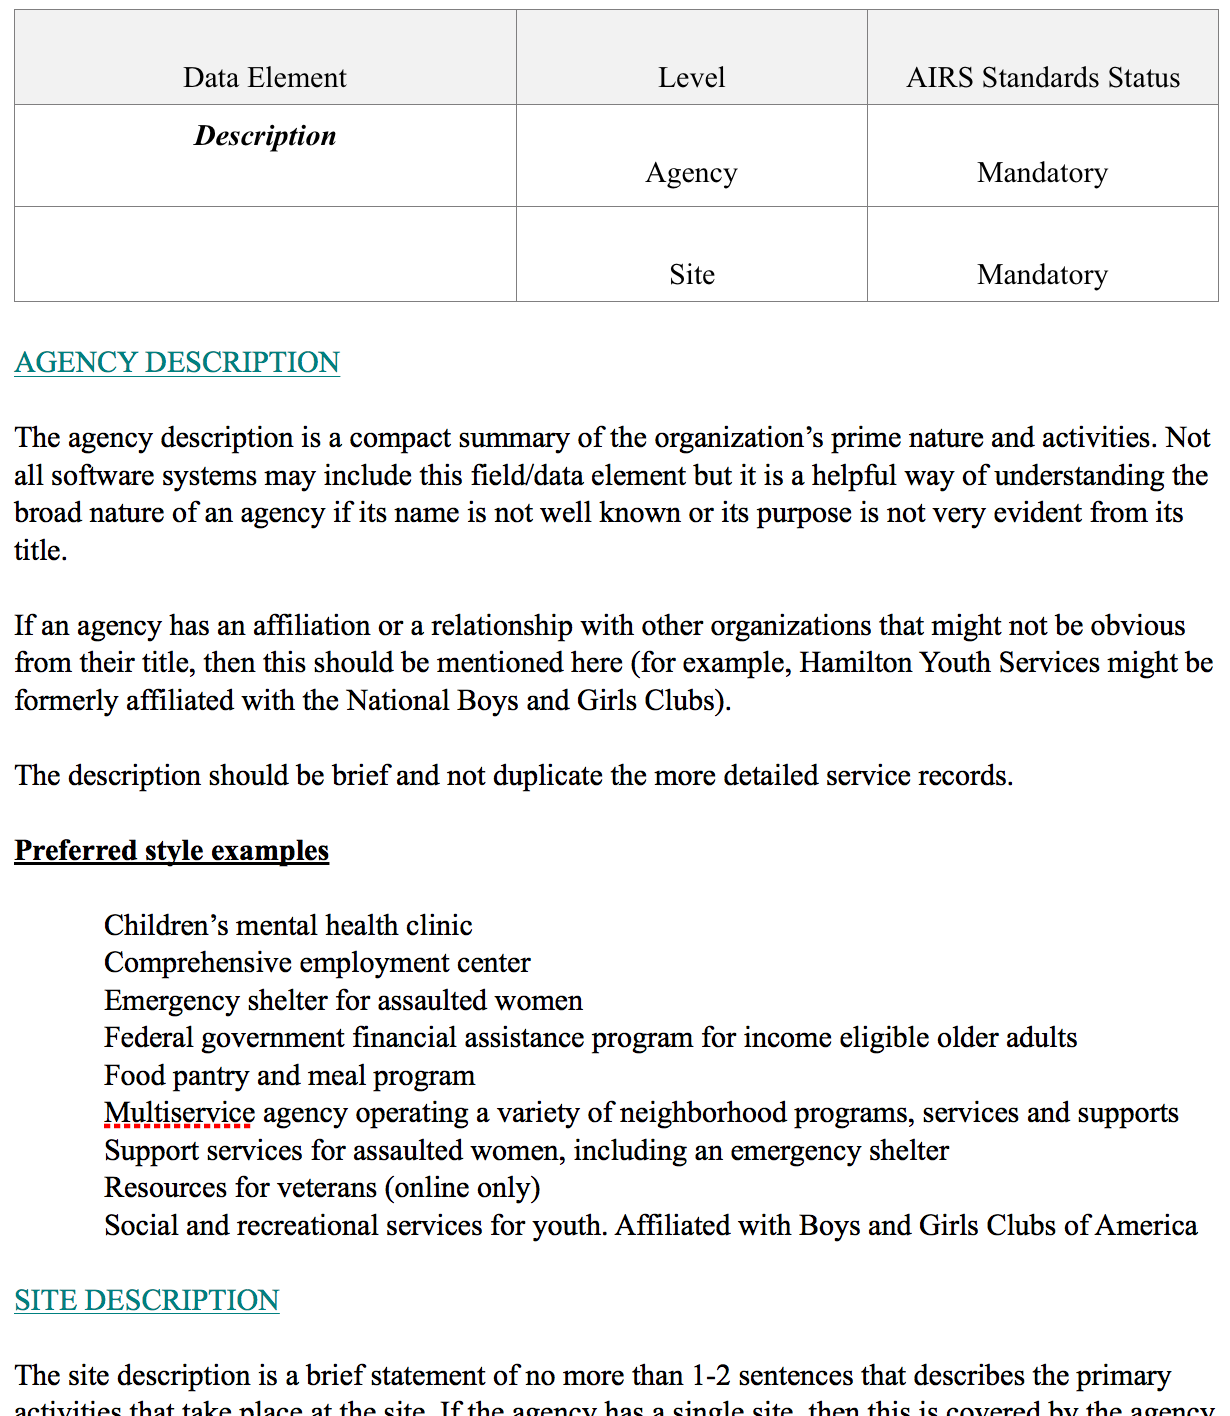 A section of the 2016 AIRS Style Guide, now open sourced!. Download the full document at: http://www.airs.org/styleguide